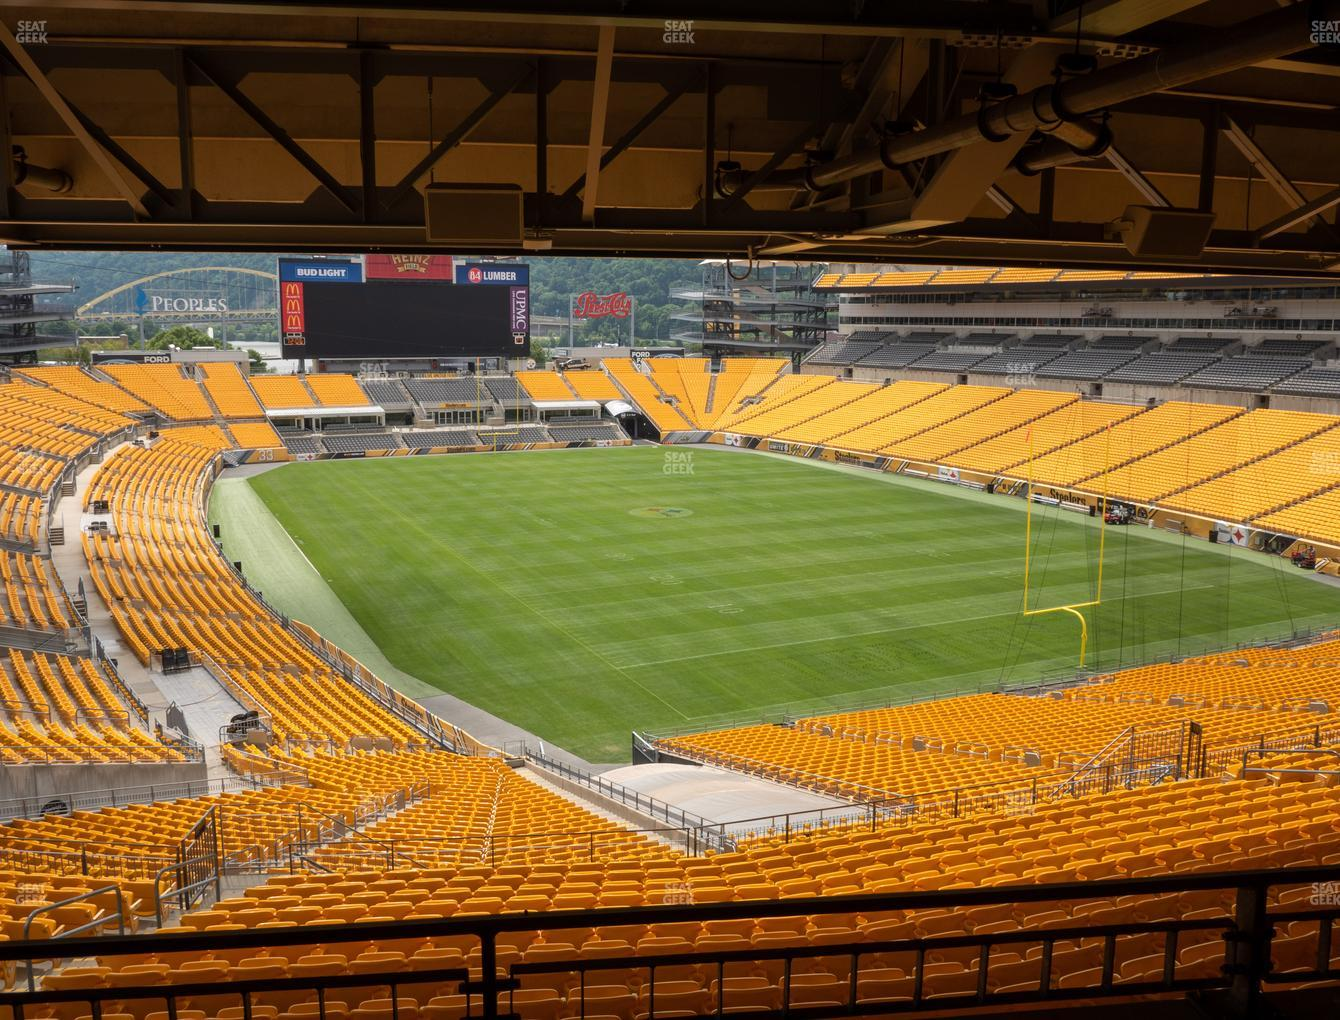 Pittsburgh Steelers at Heinz Field North Club 004 View